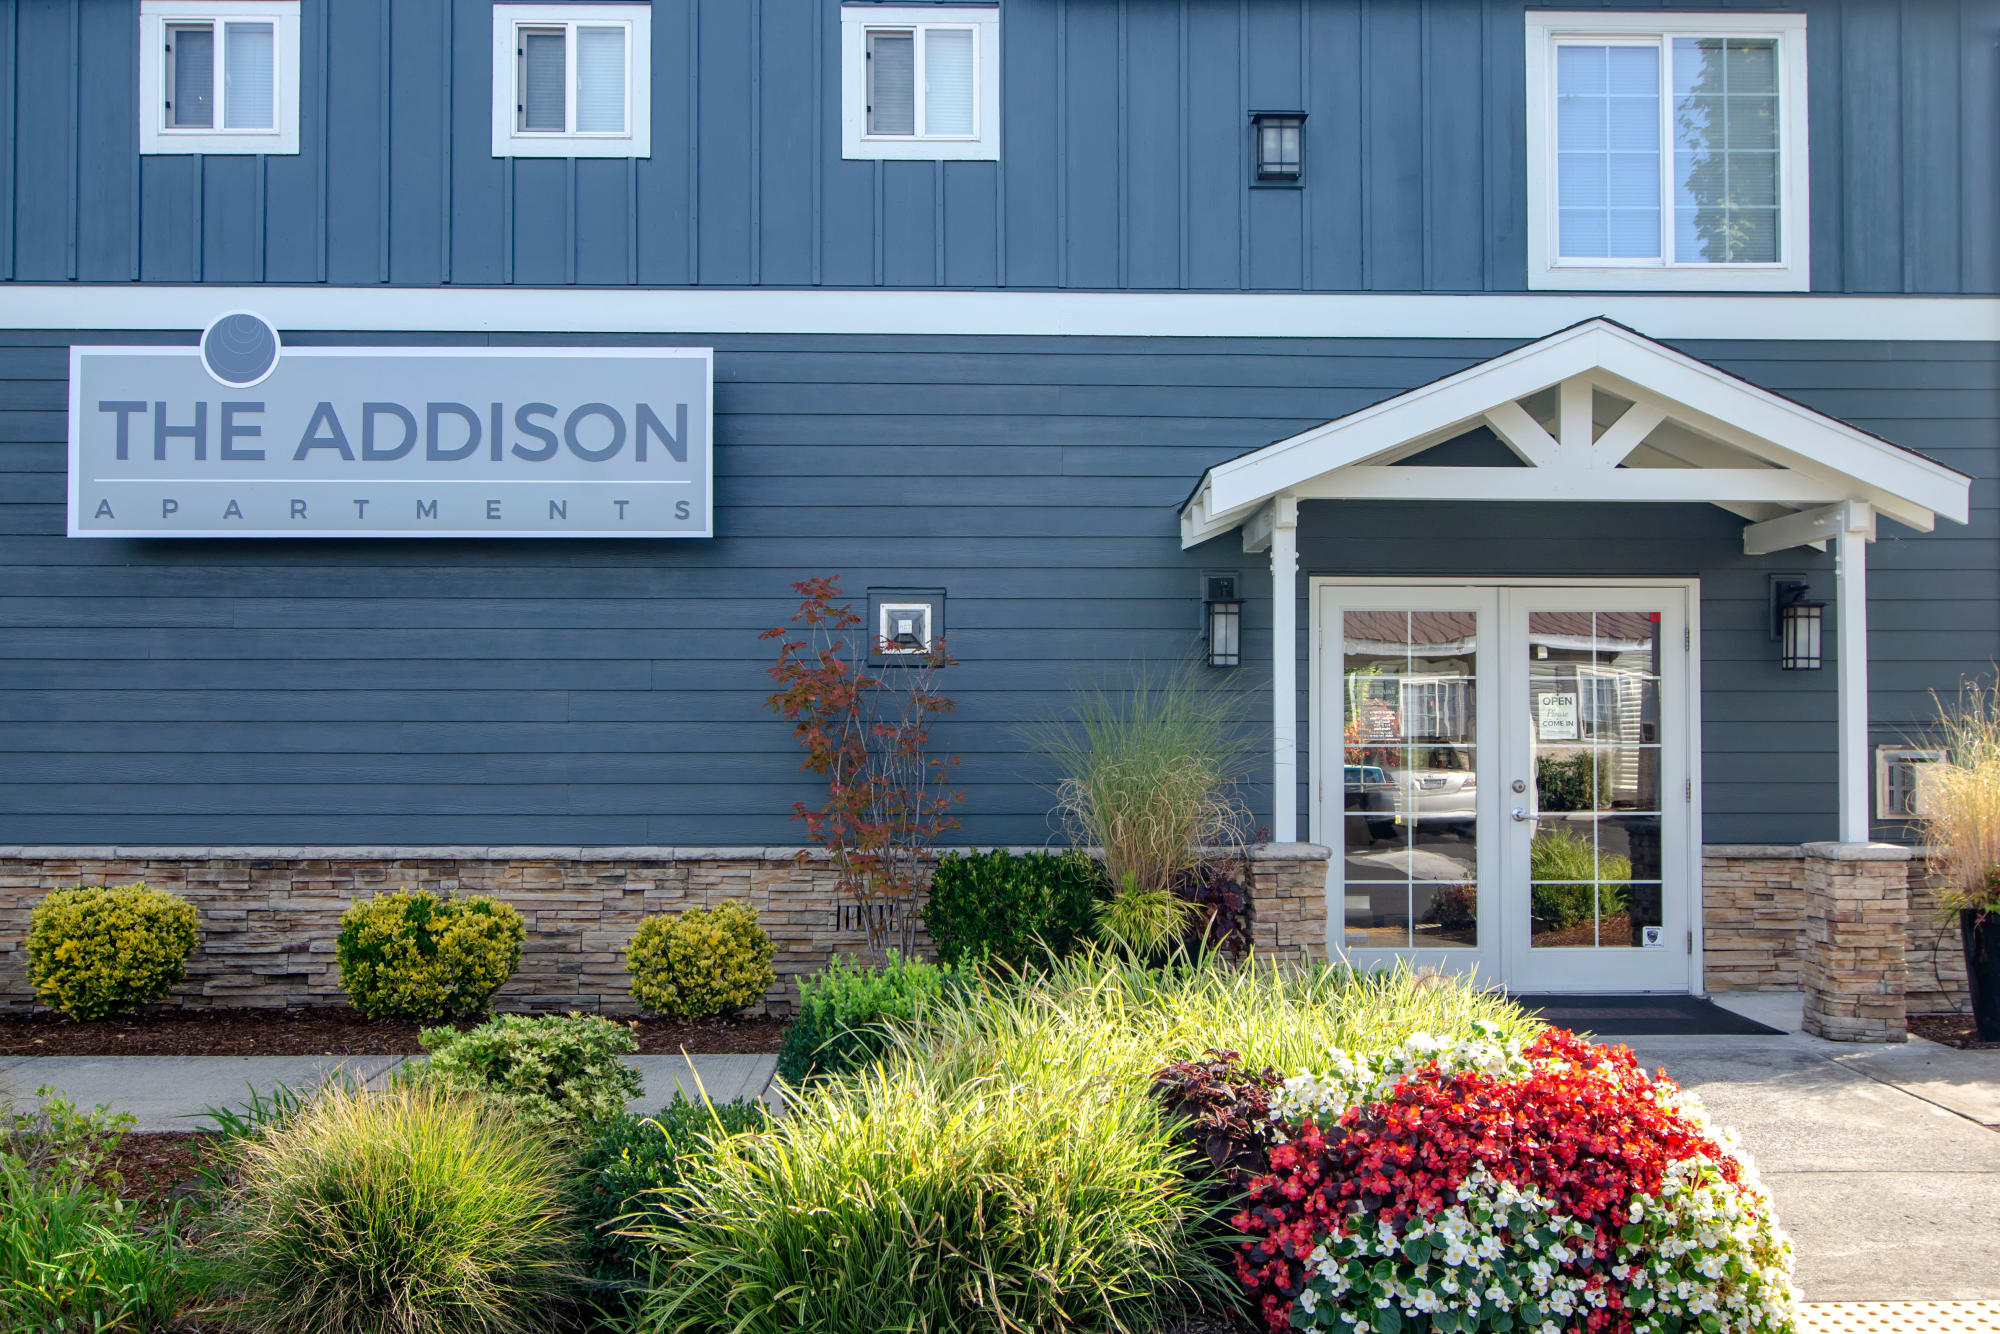 Exterior of the leasing office at The Addison Apartments in Vancouver, Washington